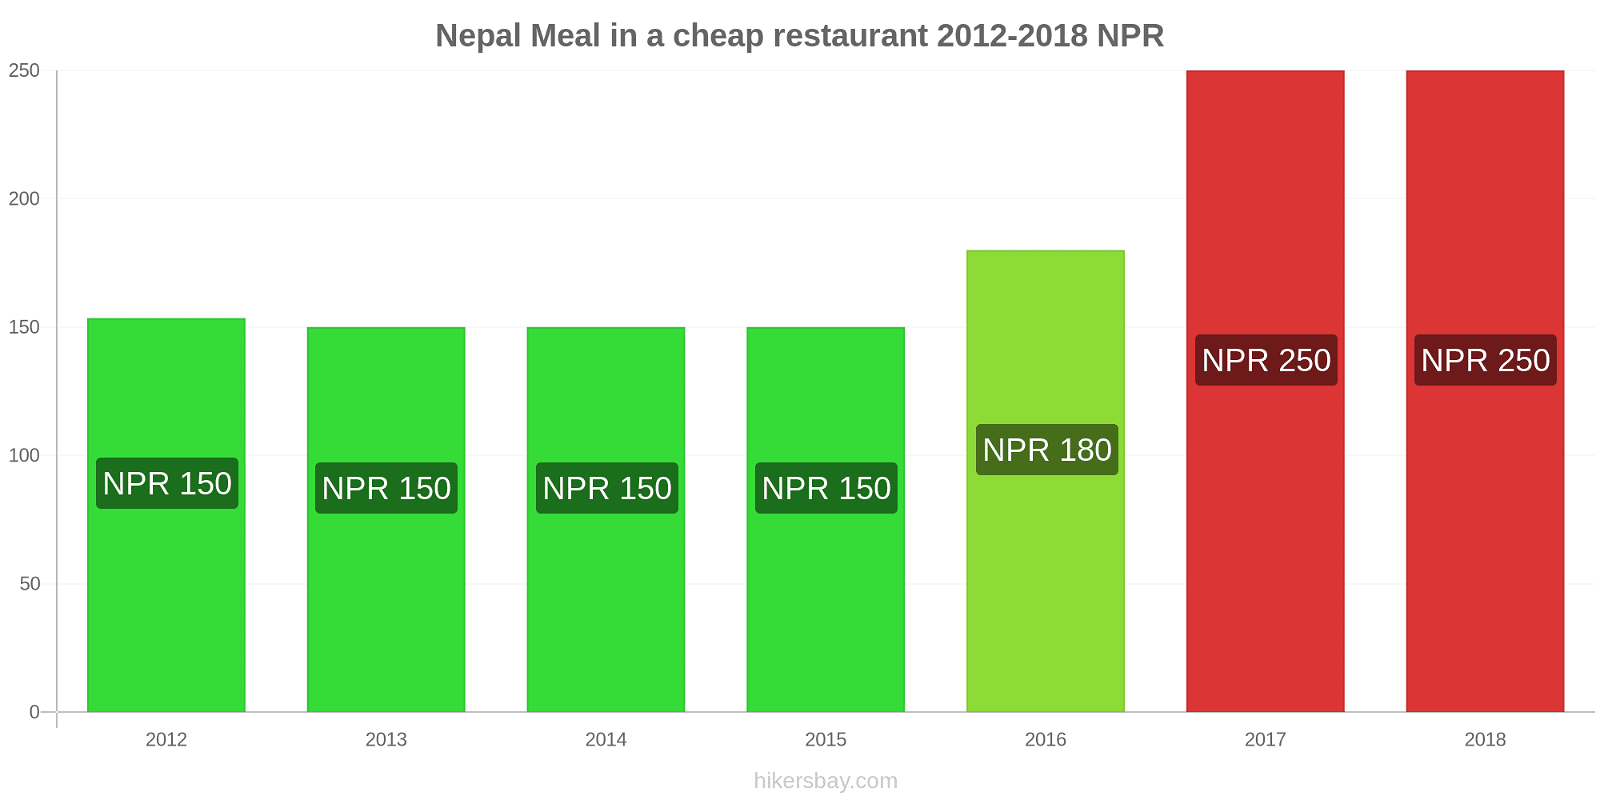 Nepal price changes Meal in a cheap restaurant hikersbay.com